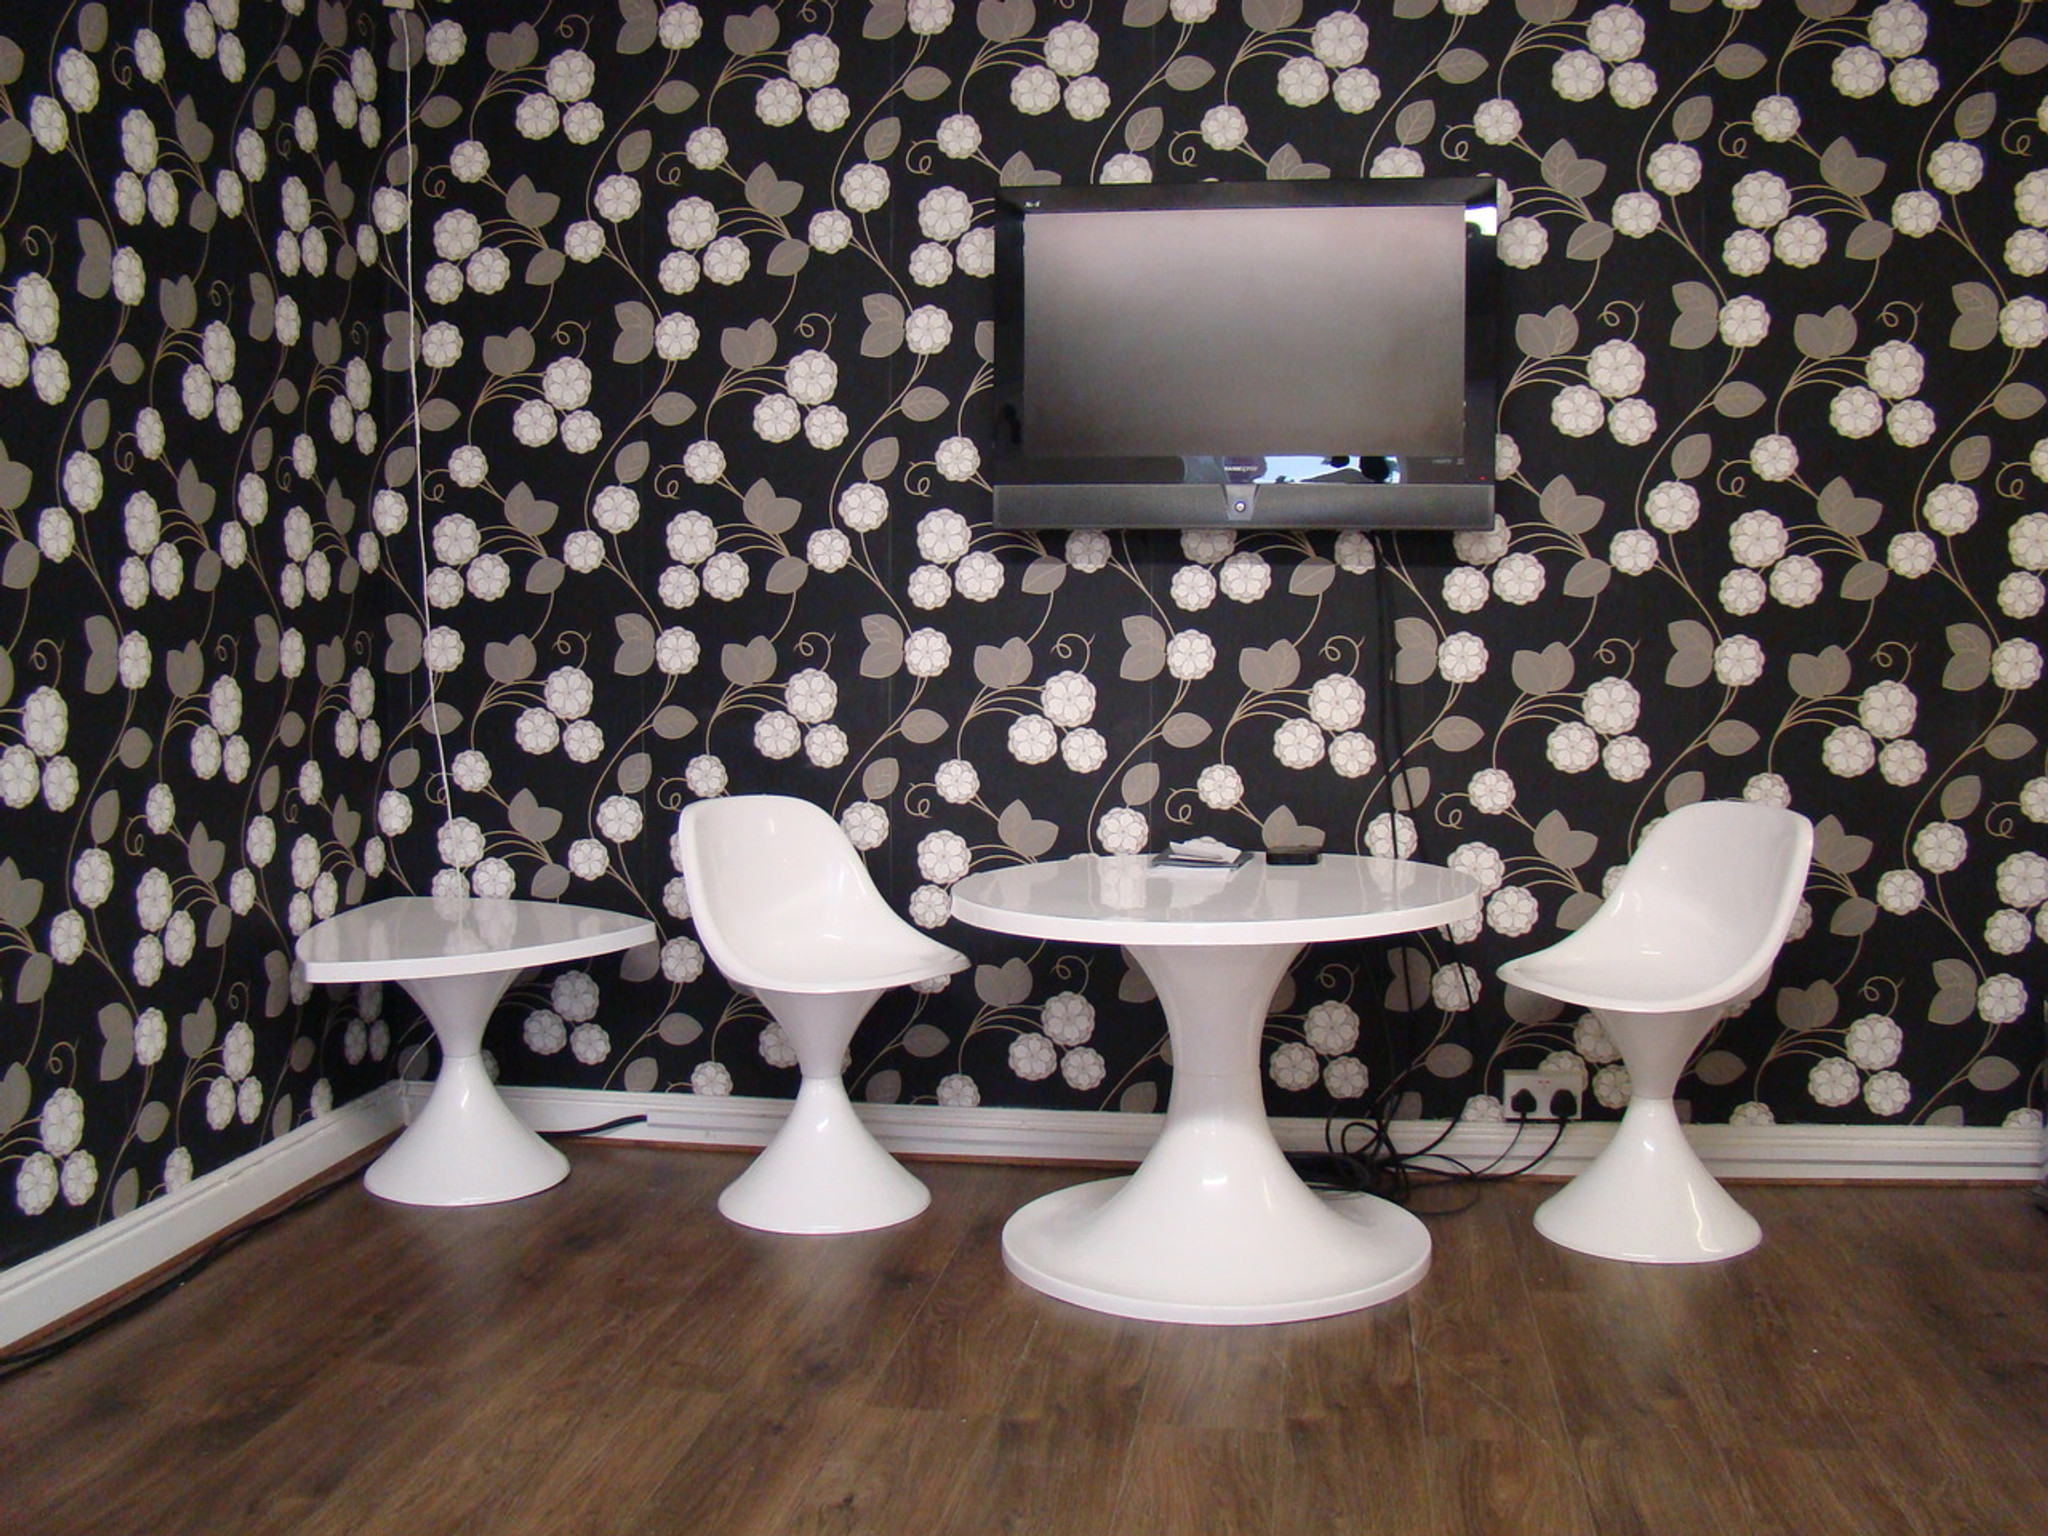 tulip table and chairs nz doc mcstuffins upholstered chair uk 1960s style furniture collection set retro vintage